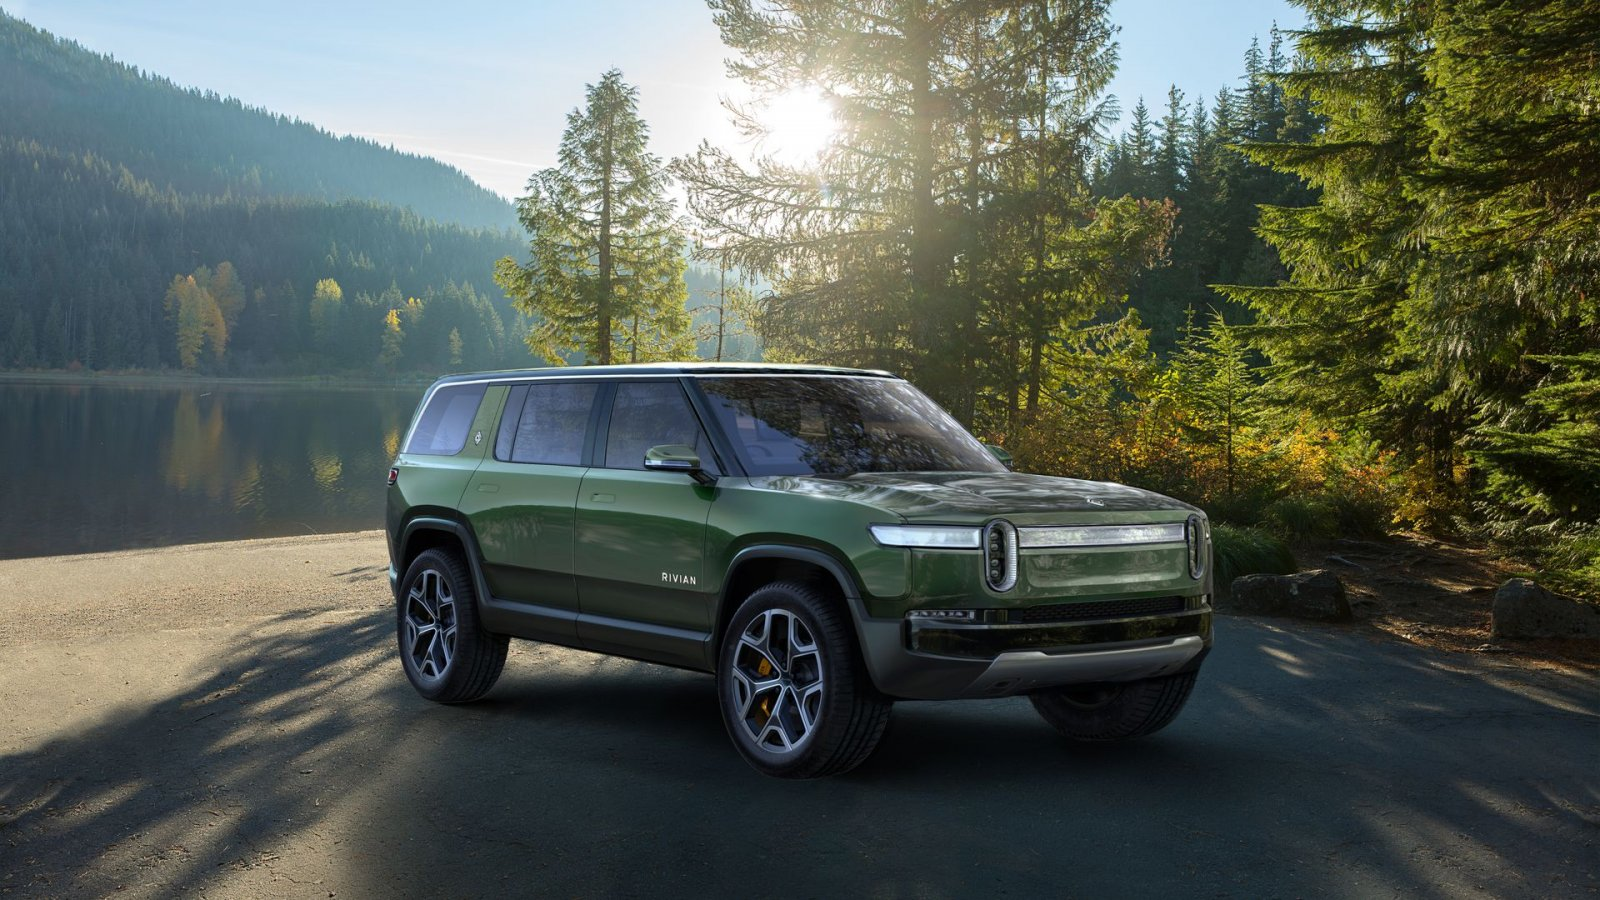 Click image for larger version  Name:Rivian.jpg Views:94 Size:324.8 KB ID:328747